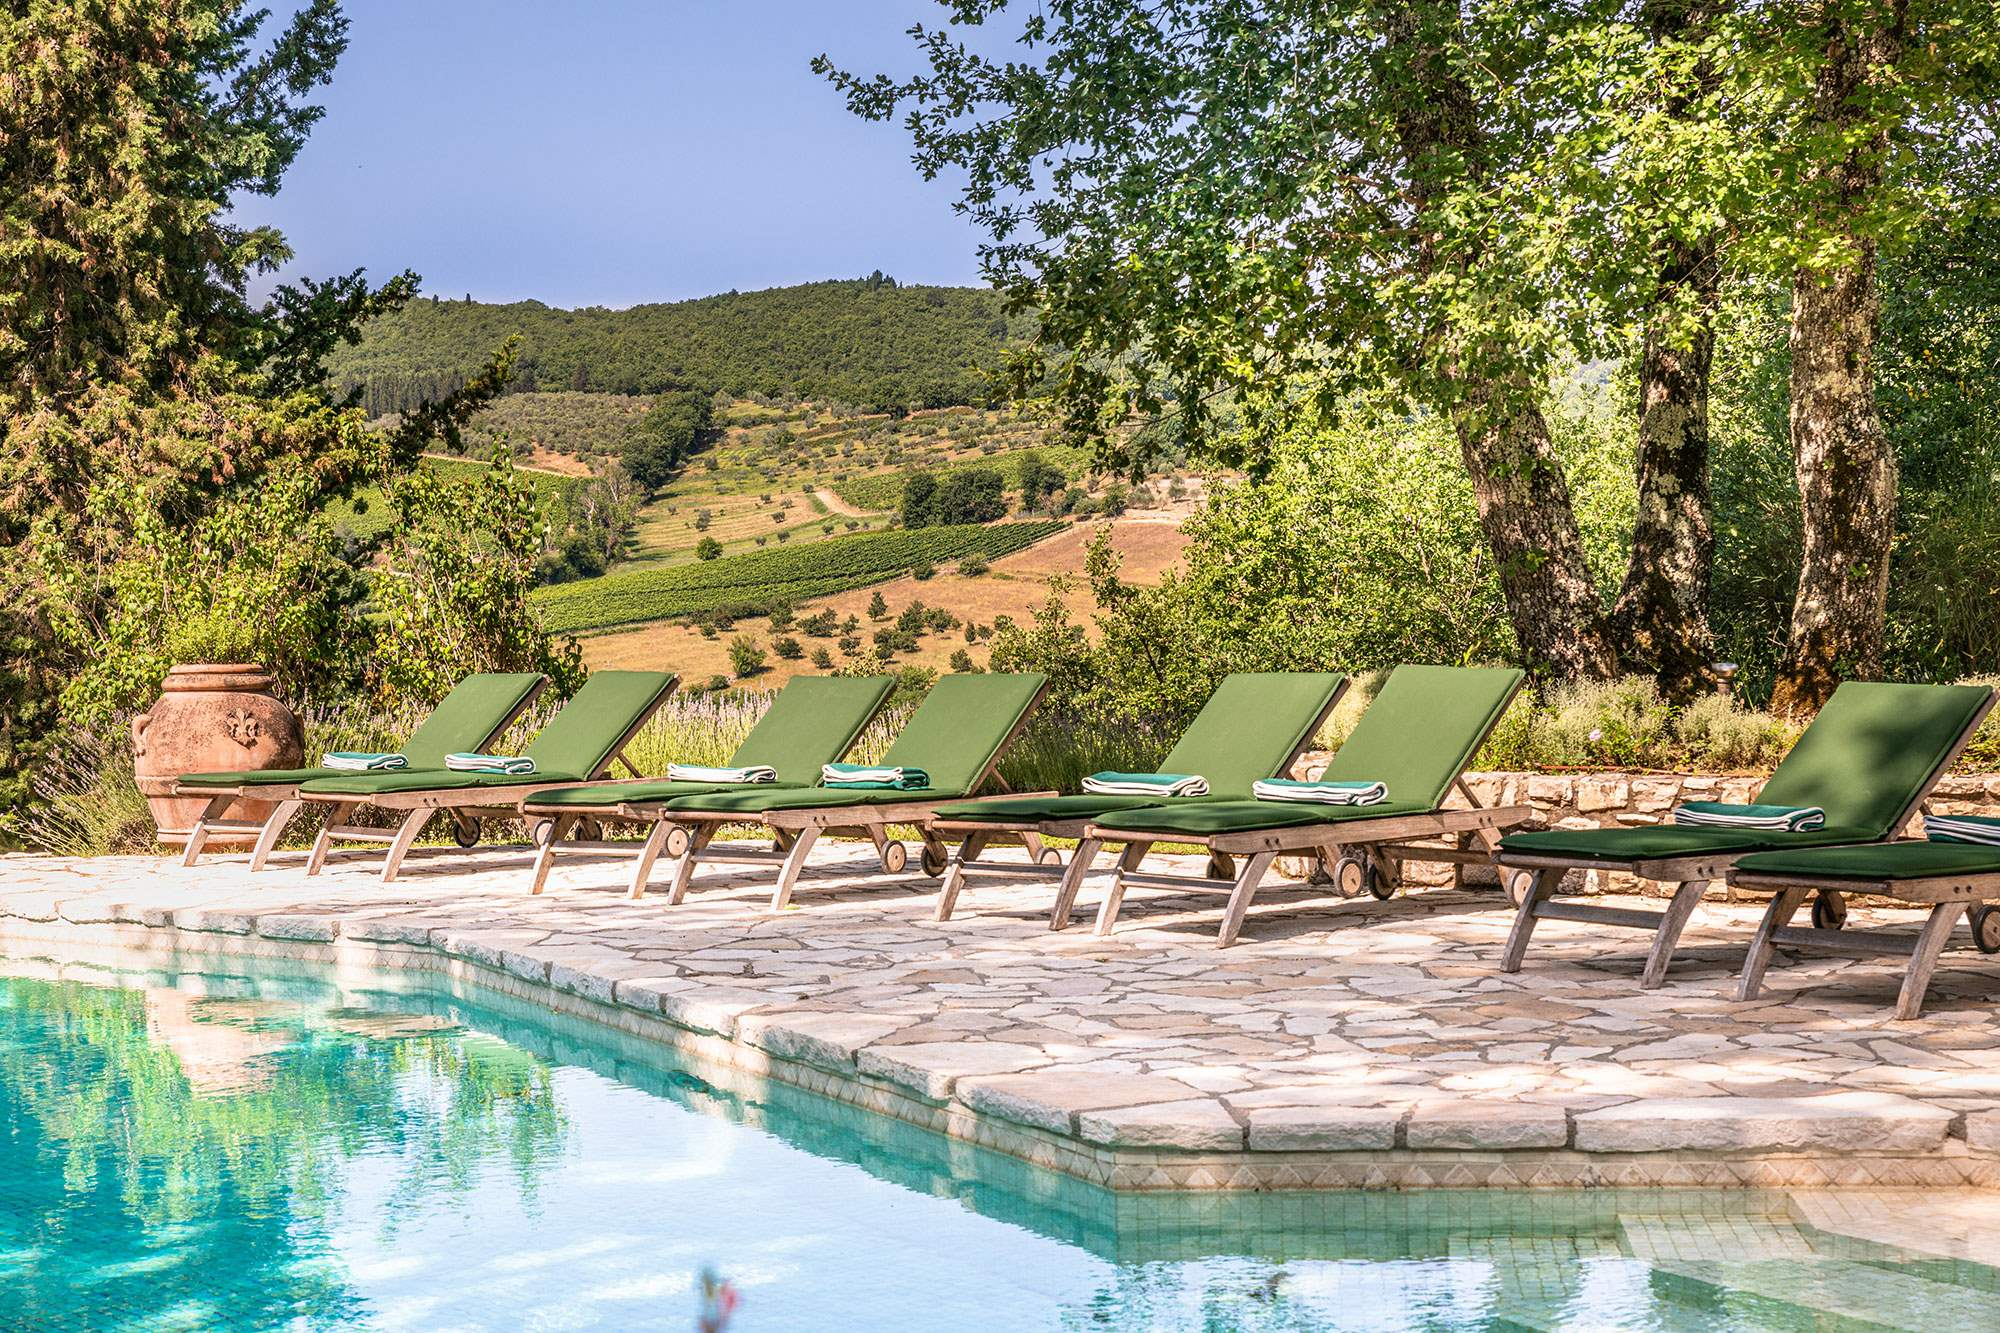 Villa Claudia, 5 Bedroom rate, 5 bedroom villa in Chianti & Countryside, Tuscany Photo #2